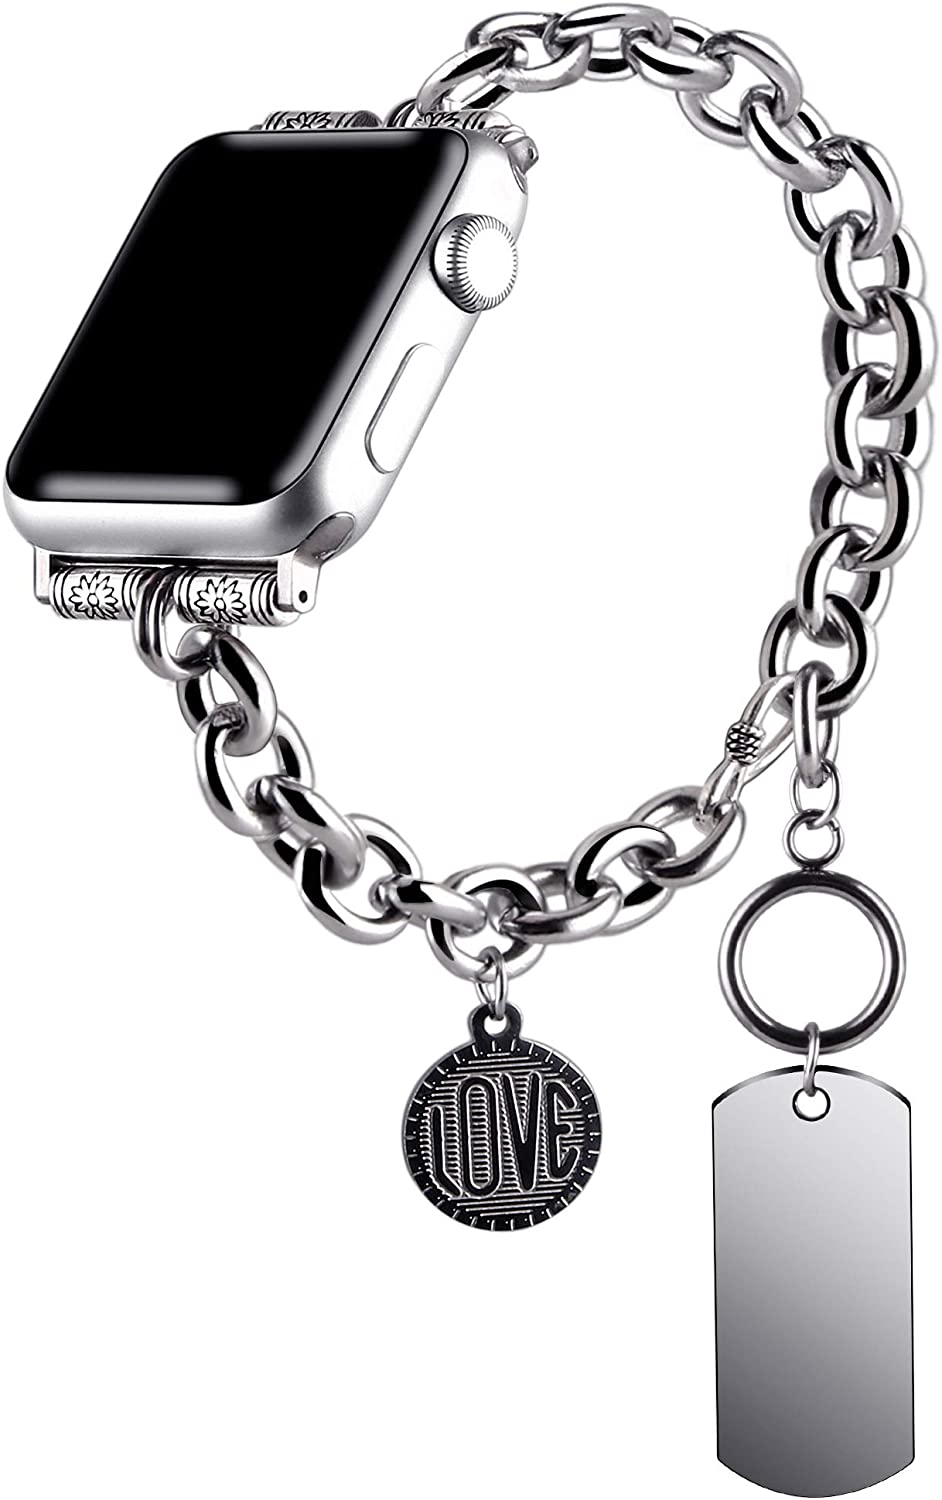 VIQIV Boho Hippie Bracelets Compatible with Apple Watch 38mm 40mm 42mm 44mm iwatch SE Series 6 5 4 3 2 1 for Women Mens, Stainless Steel Jewelry Dressy Metallic Charm Wristband Strap Accessories